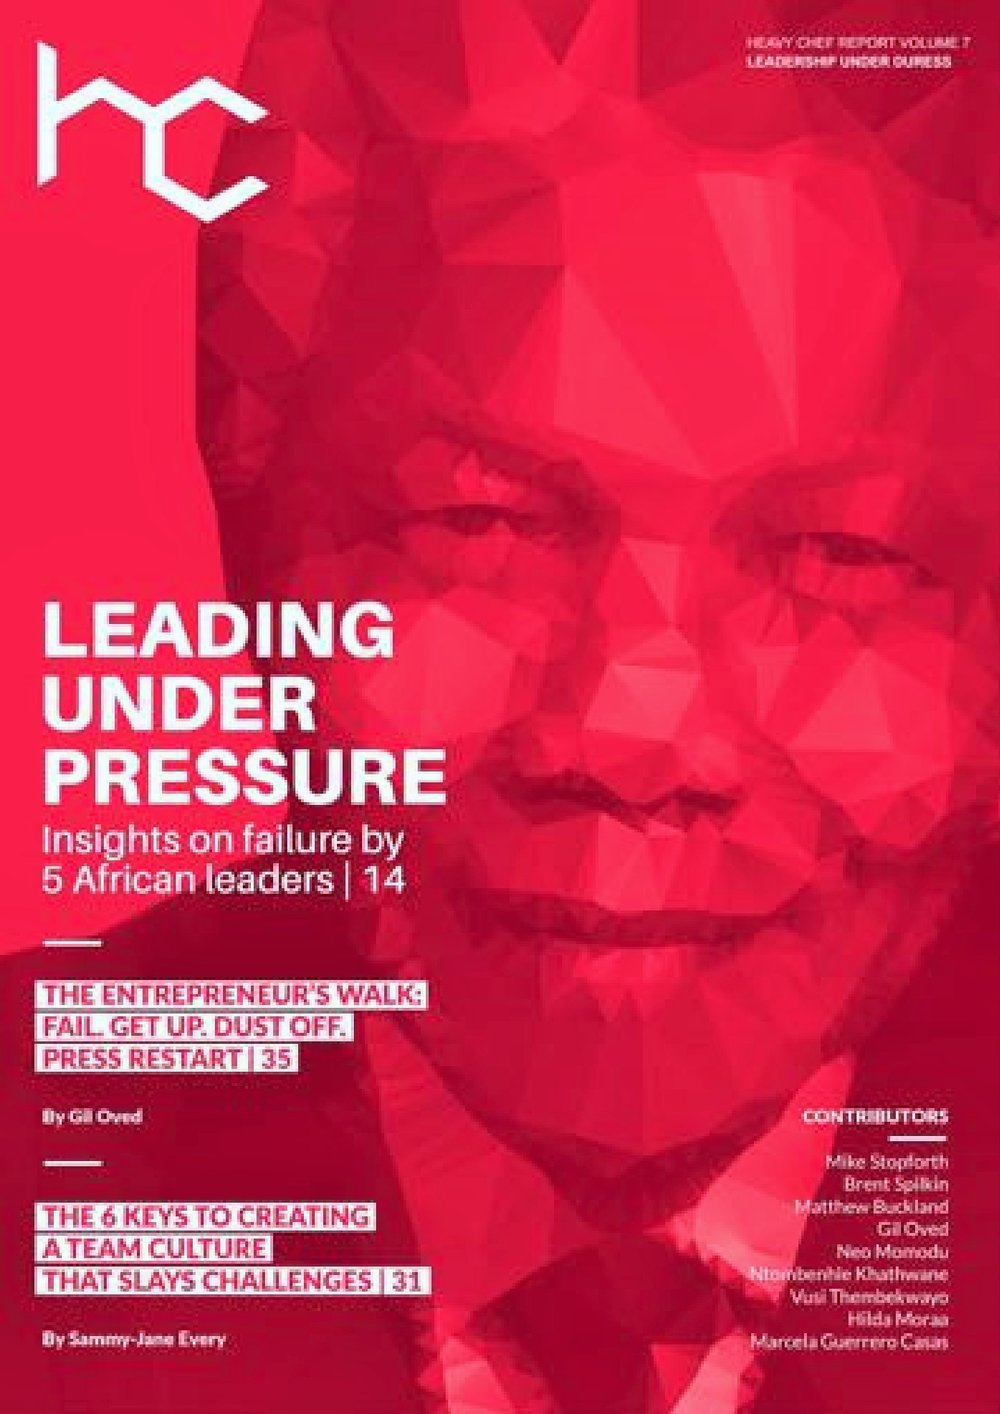 Our bright red cover, with Nelson Mandela on it, is as eye-catching as the content within.